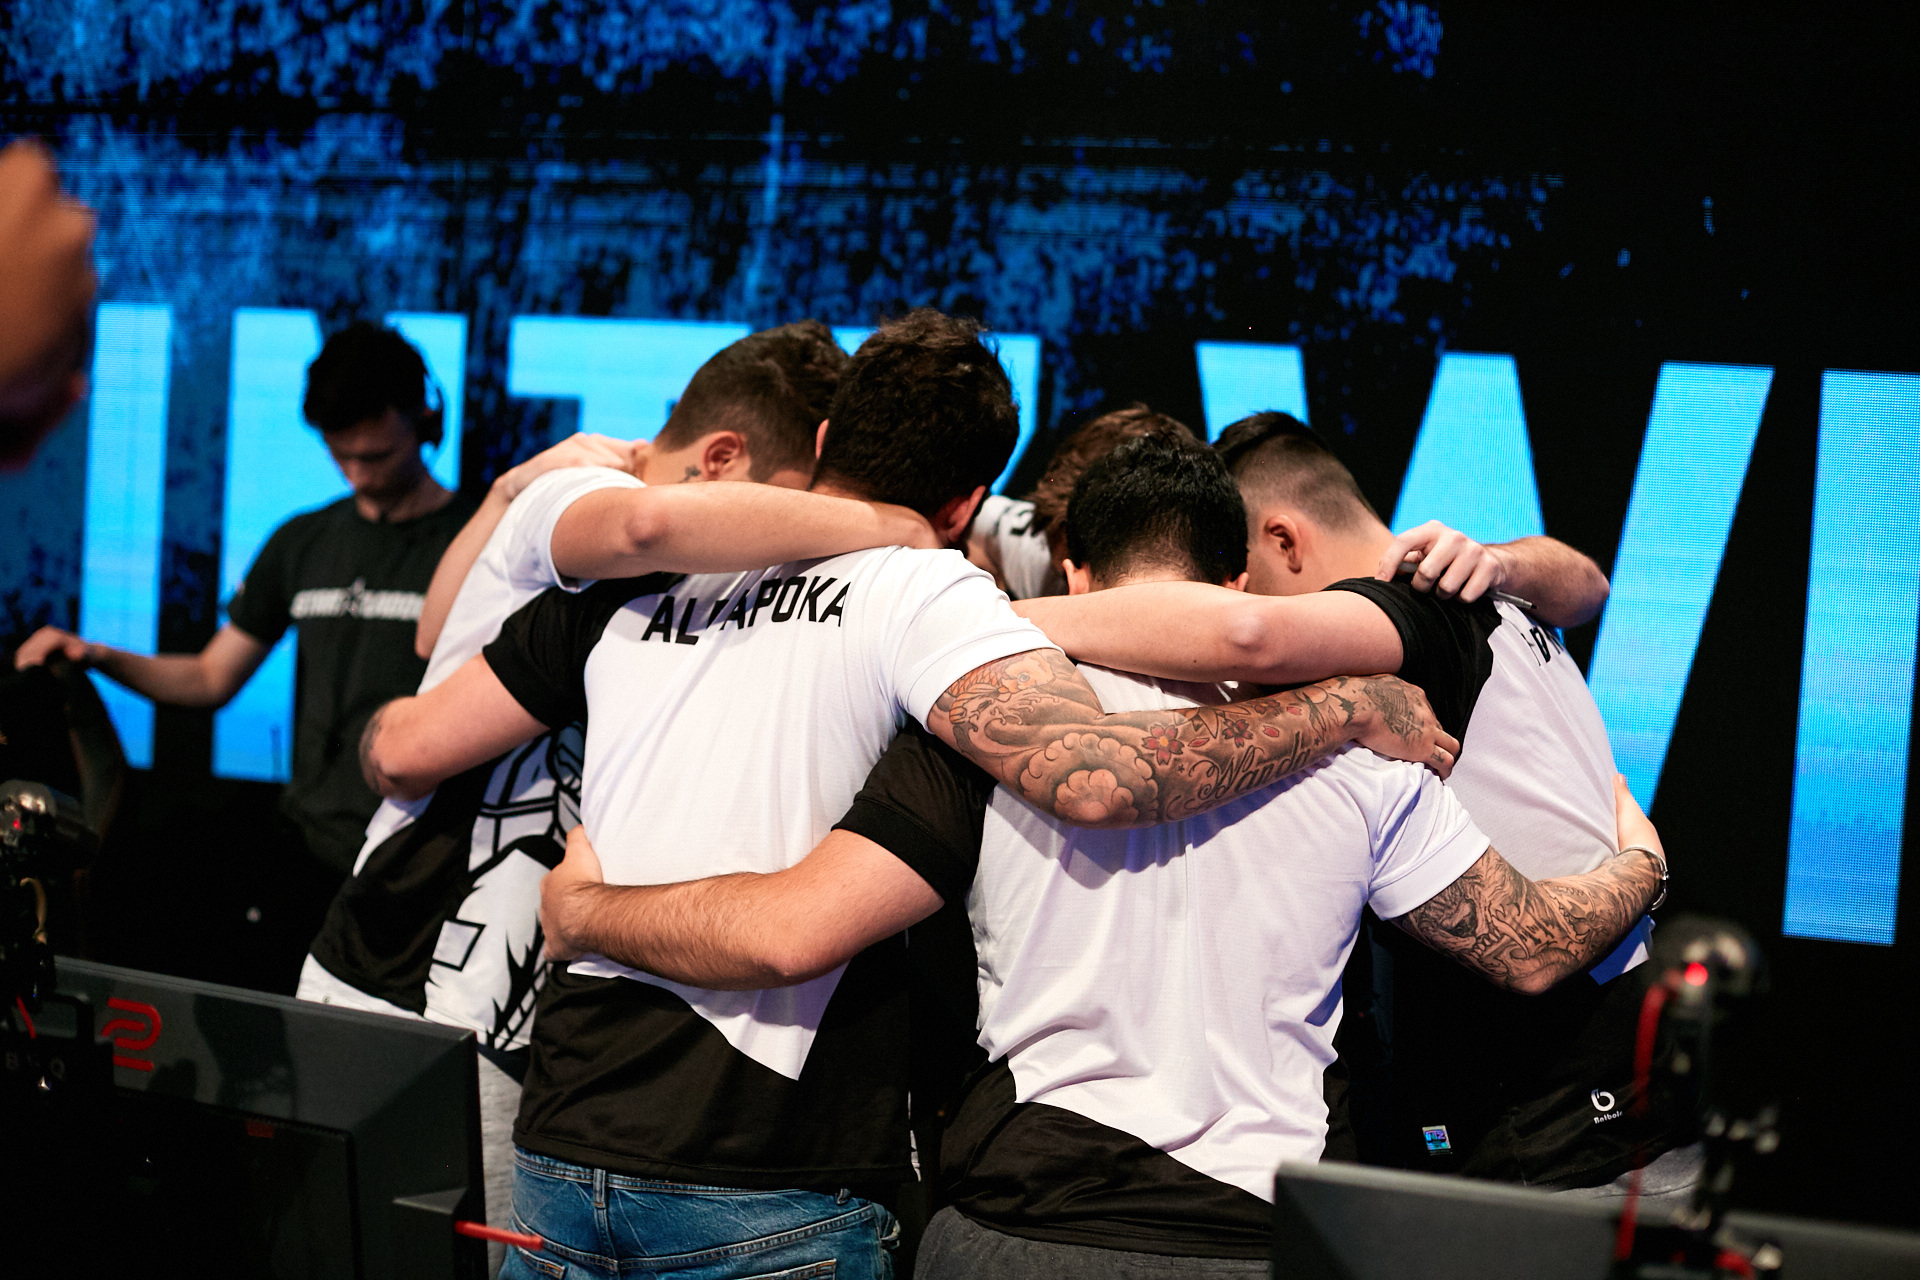 NRG and INTZ to UB Final at Americas Minor